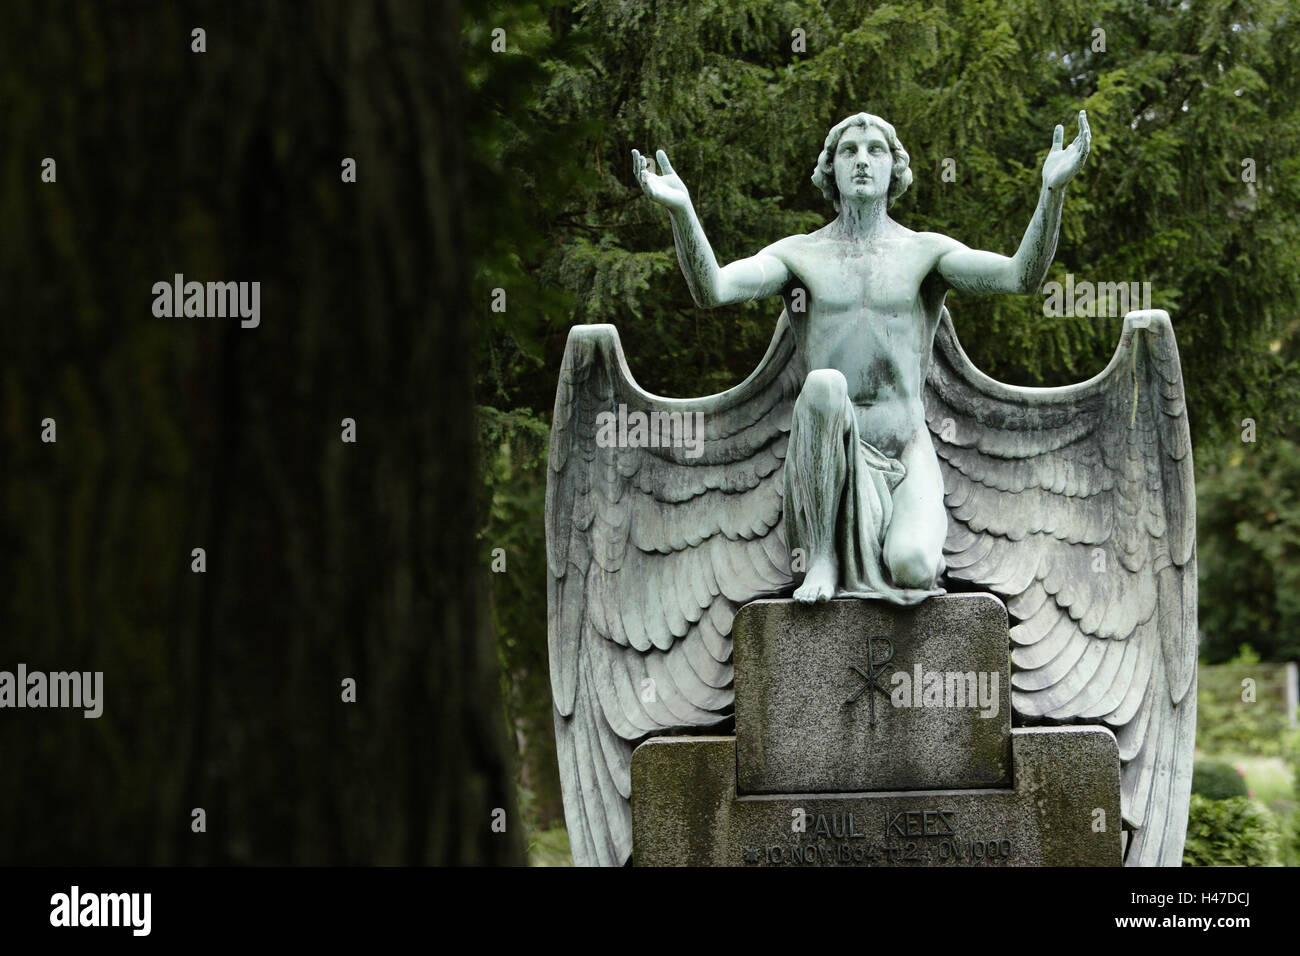 Grave yard, grave, statue, anges, Photo Stock